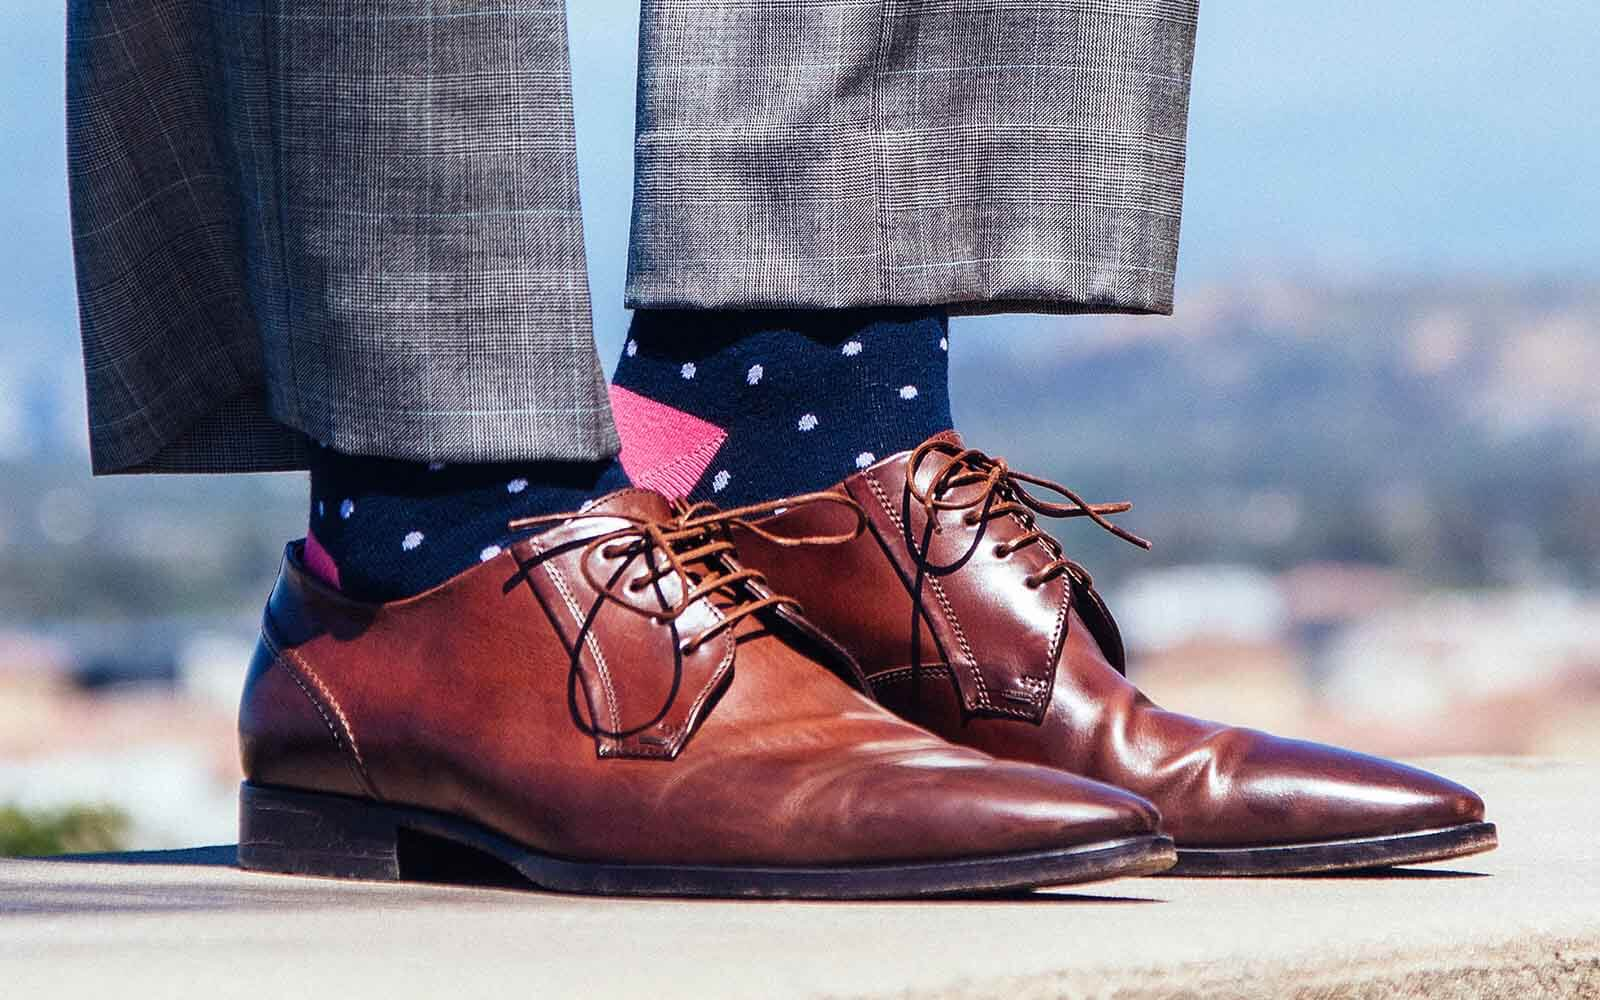 man wearing slacks with ties.com socks